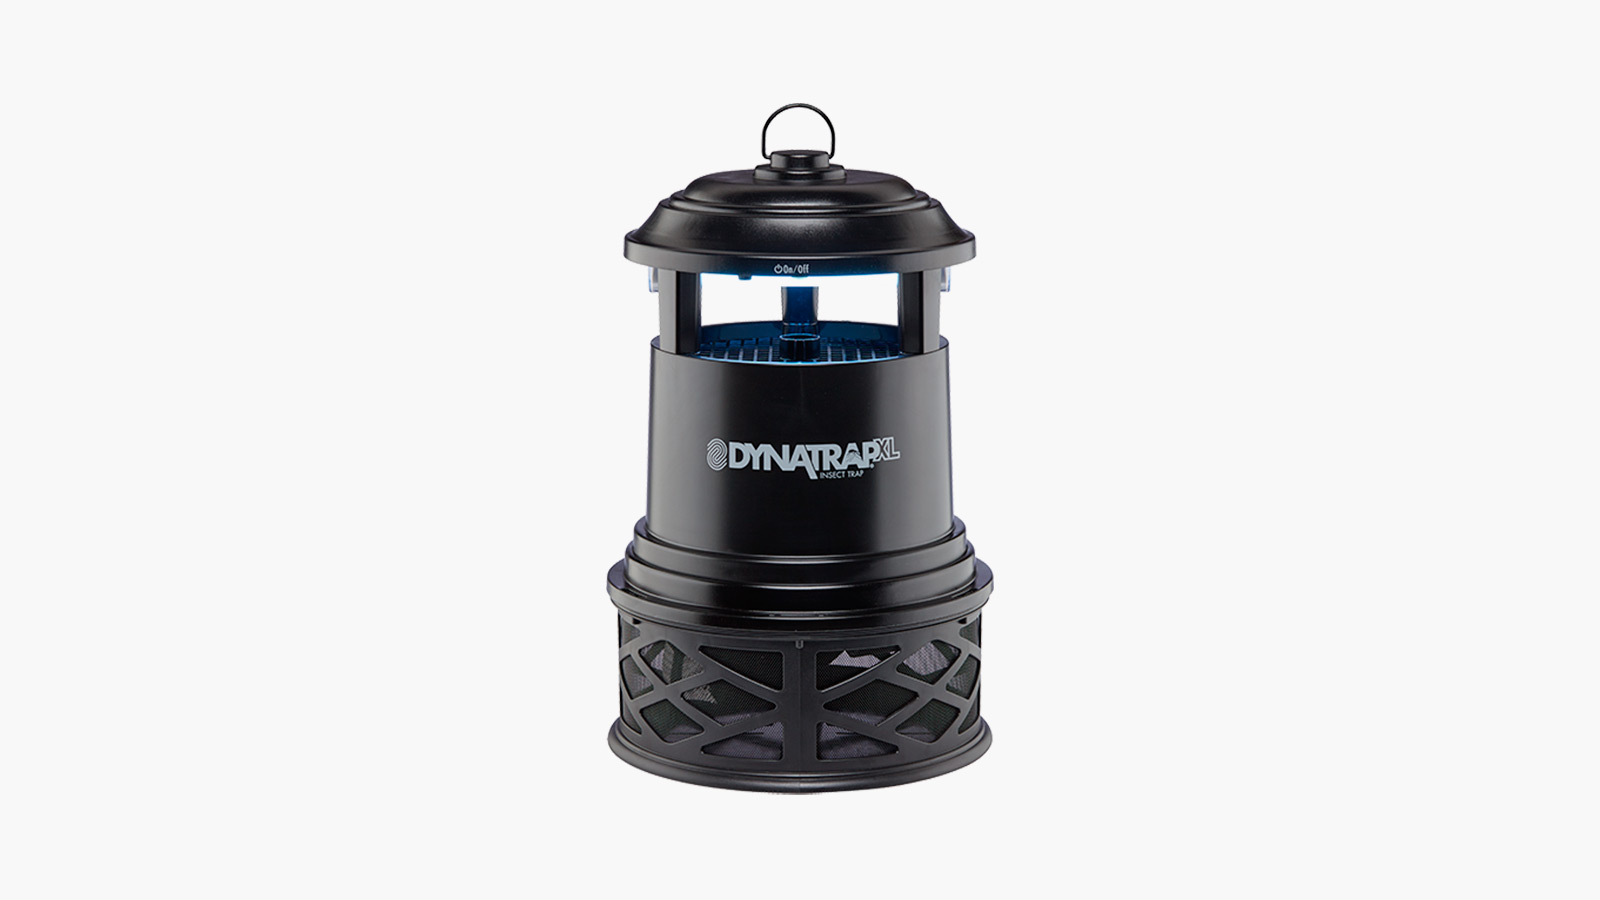 Dynatrap dt2000xl insect trap imboldn for Dynatrap insect trap